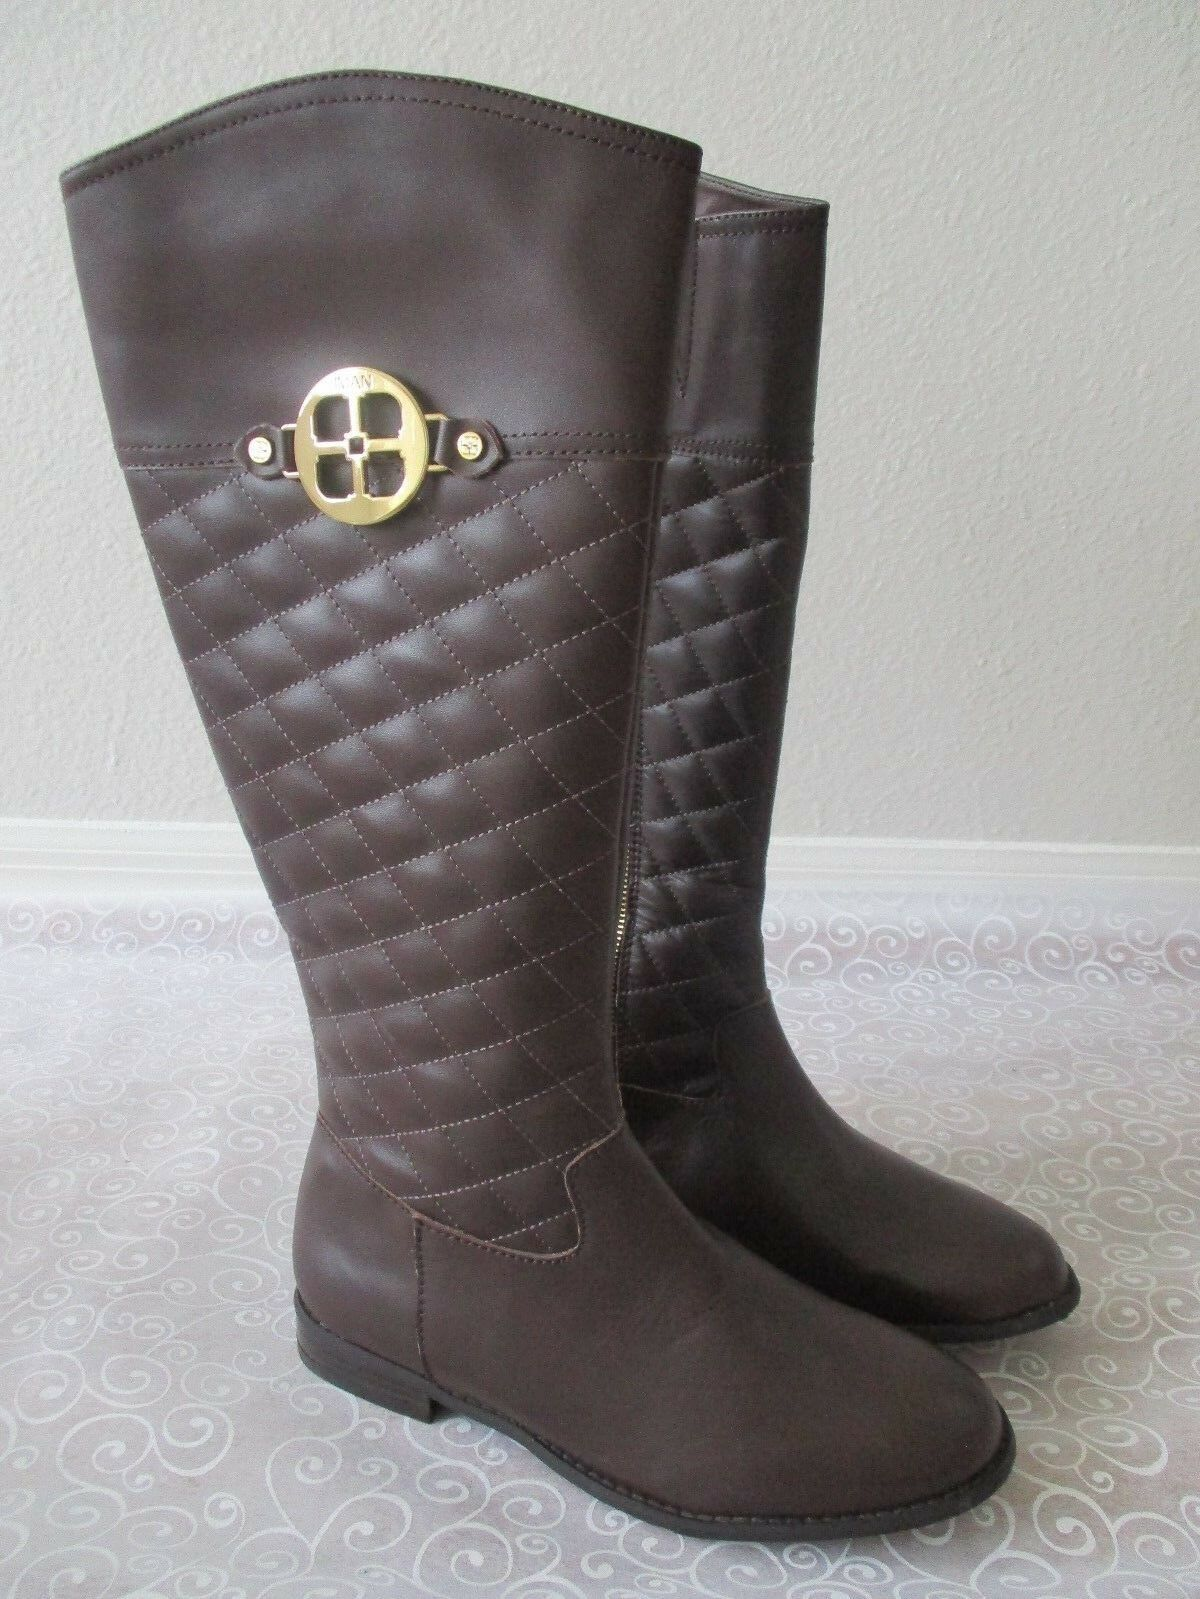 IMAN CHOCOLATE BROWN QUILTED LEATHER KNEE HIGH BOOTS SIZE 8 M - NEW